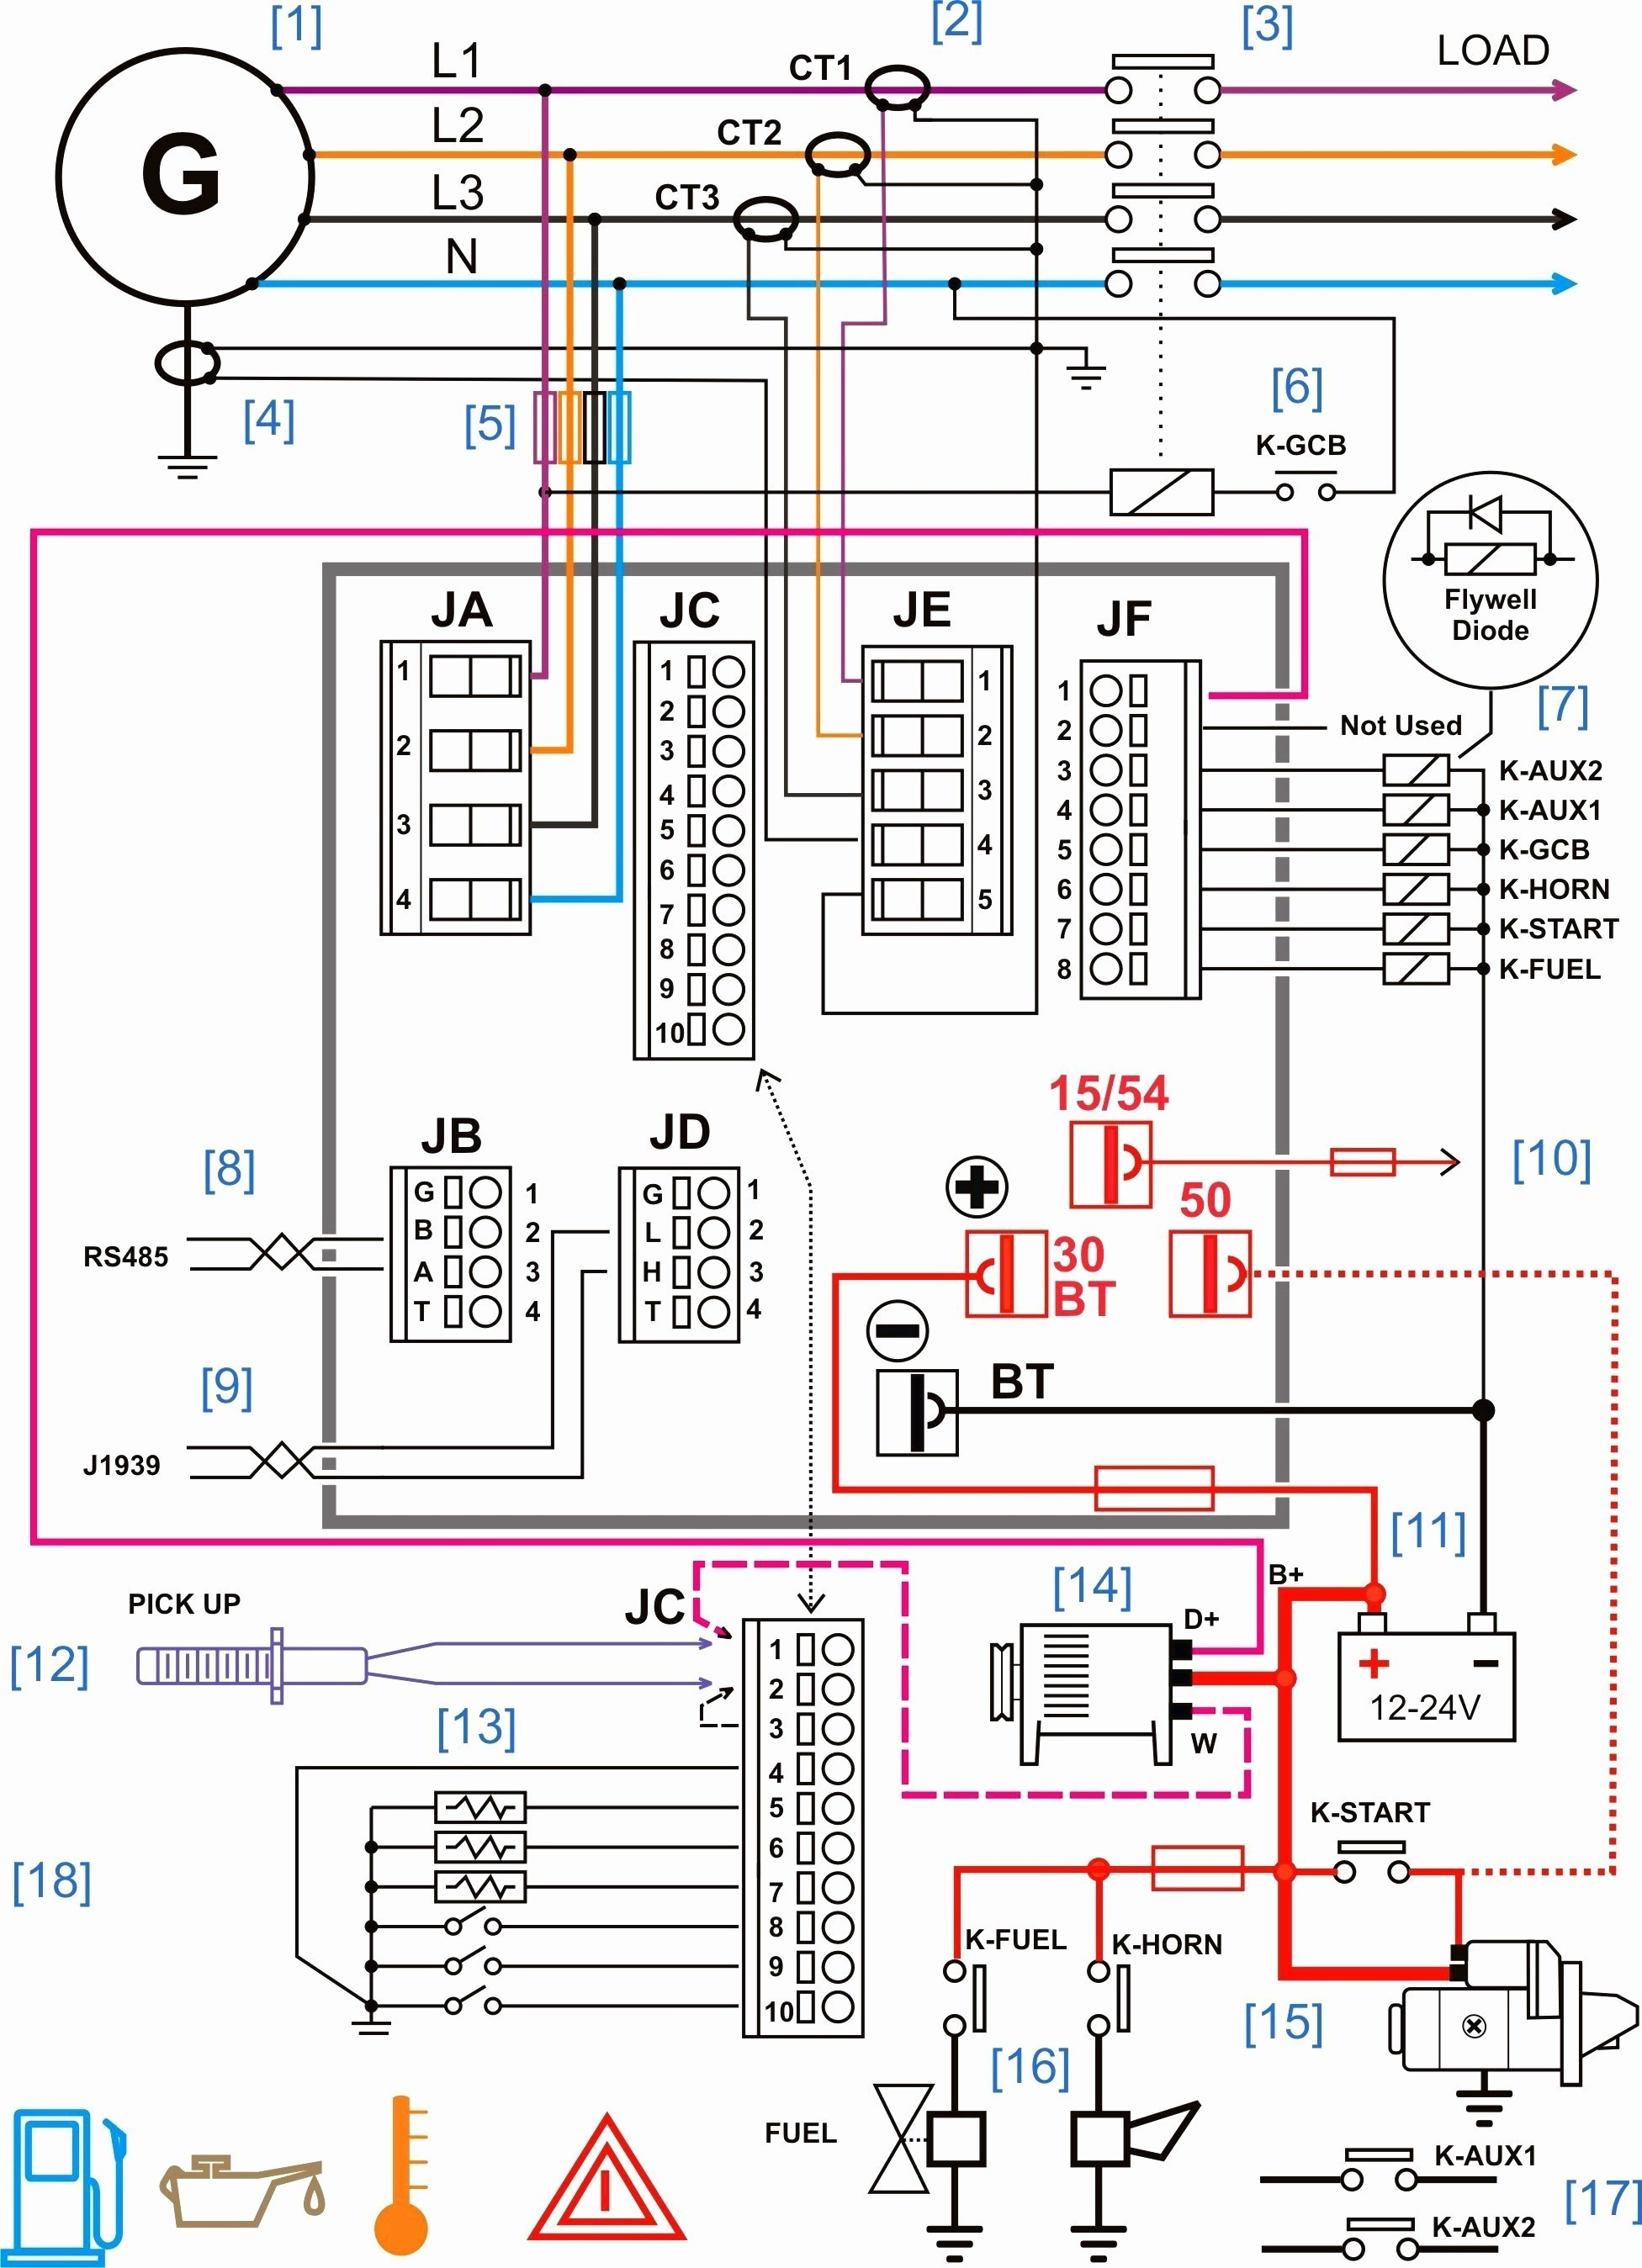 Wiring Diagram Drawing tool Reference Electrical Circuits Drawing Free software Best Automotive Wiring